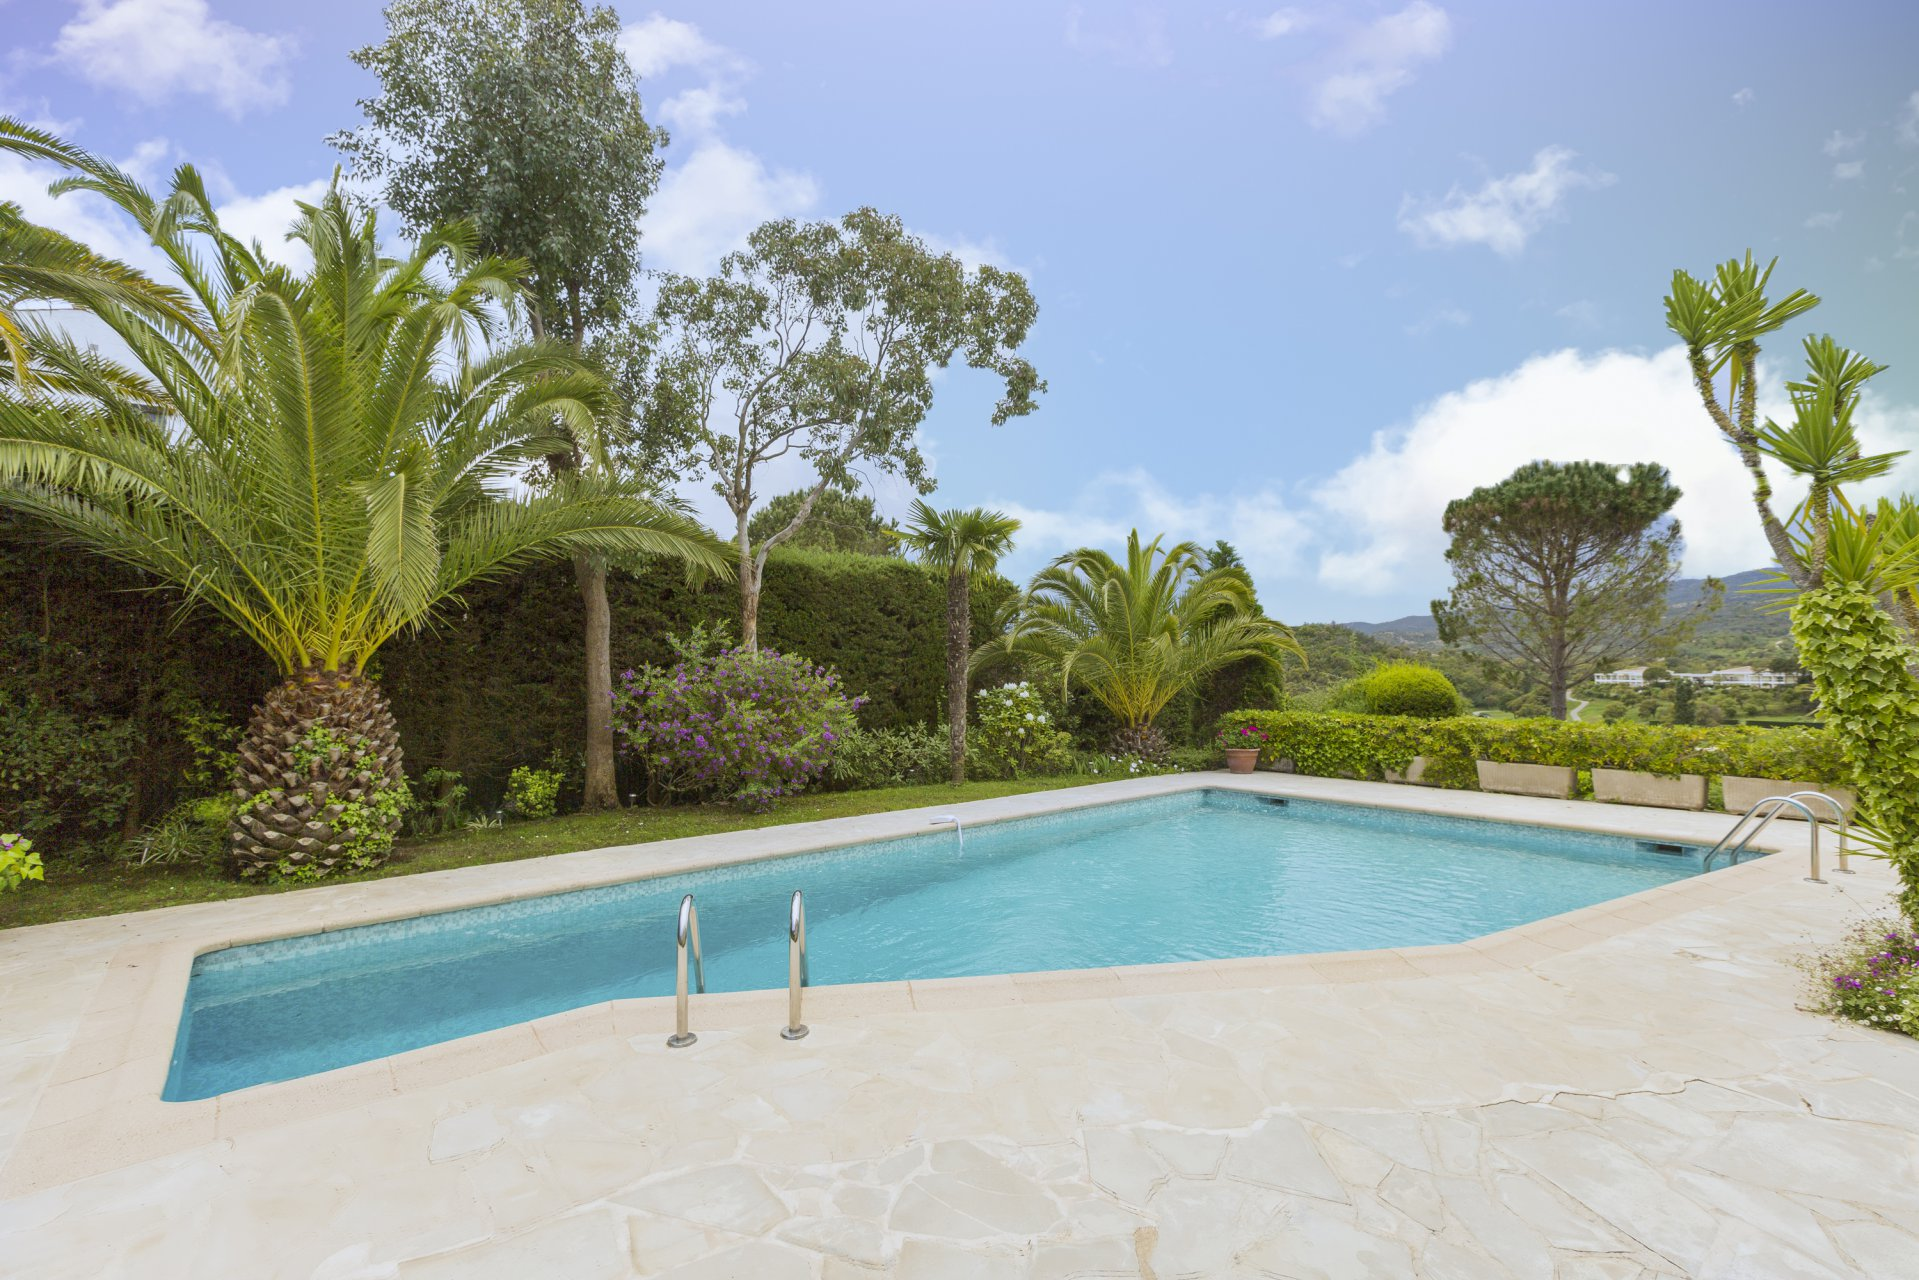 Mandelieu : 4 bed villa in excellent condition with views over the golf